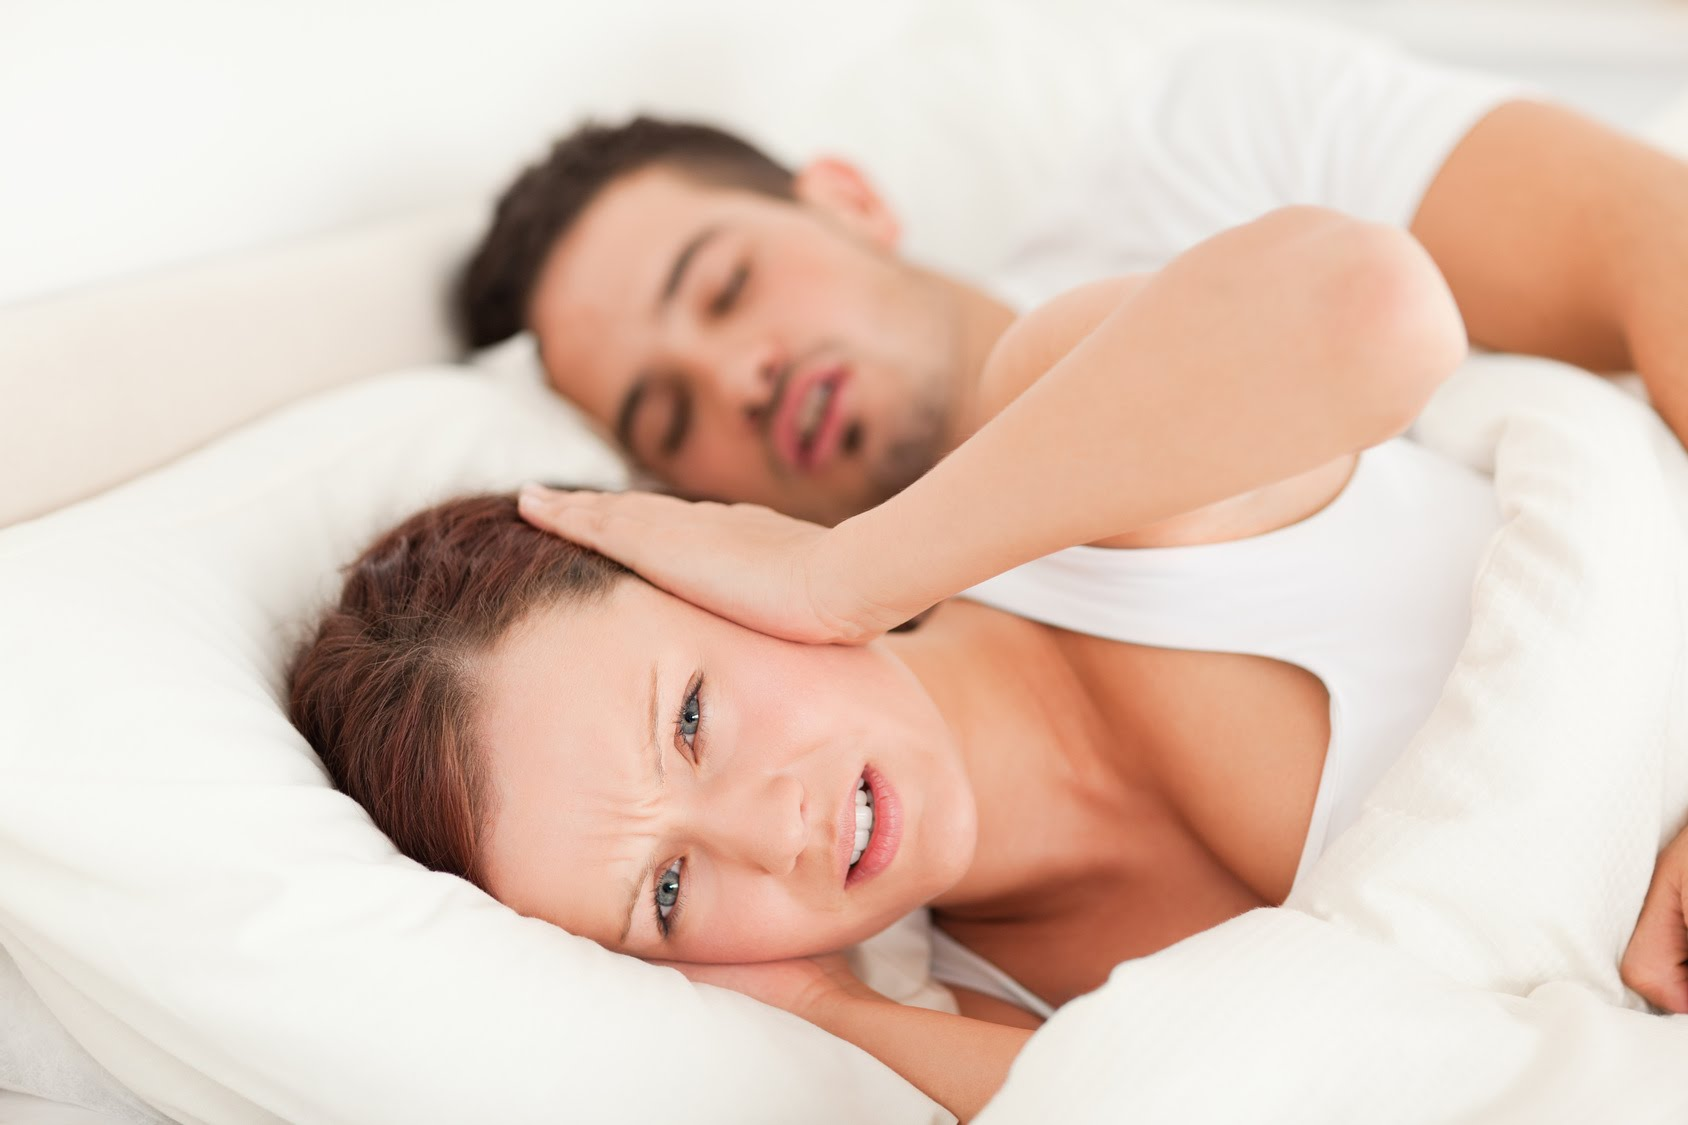 Stop Snoring Devices That Work